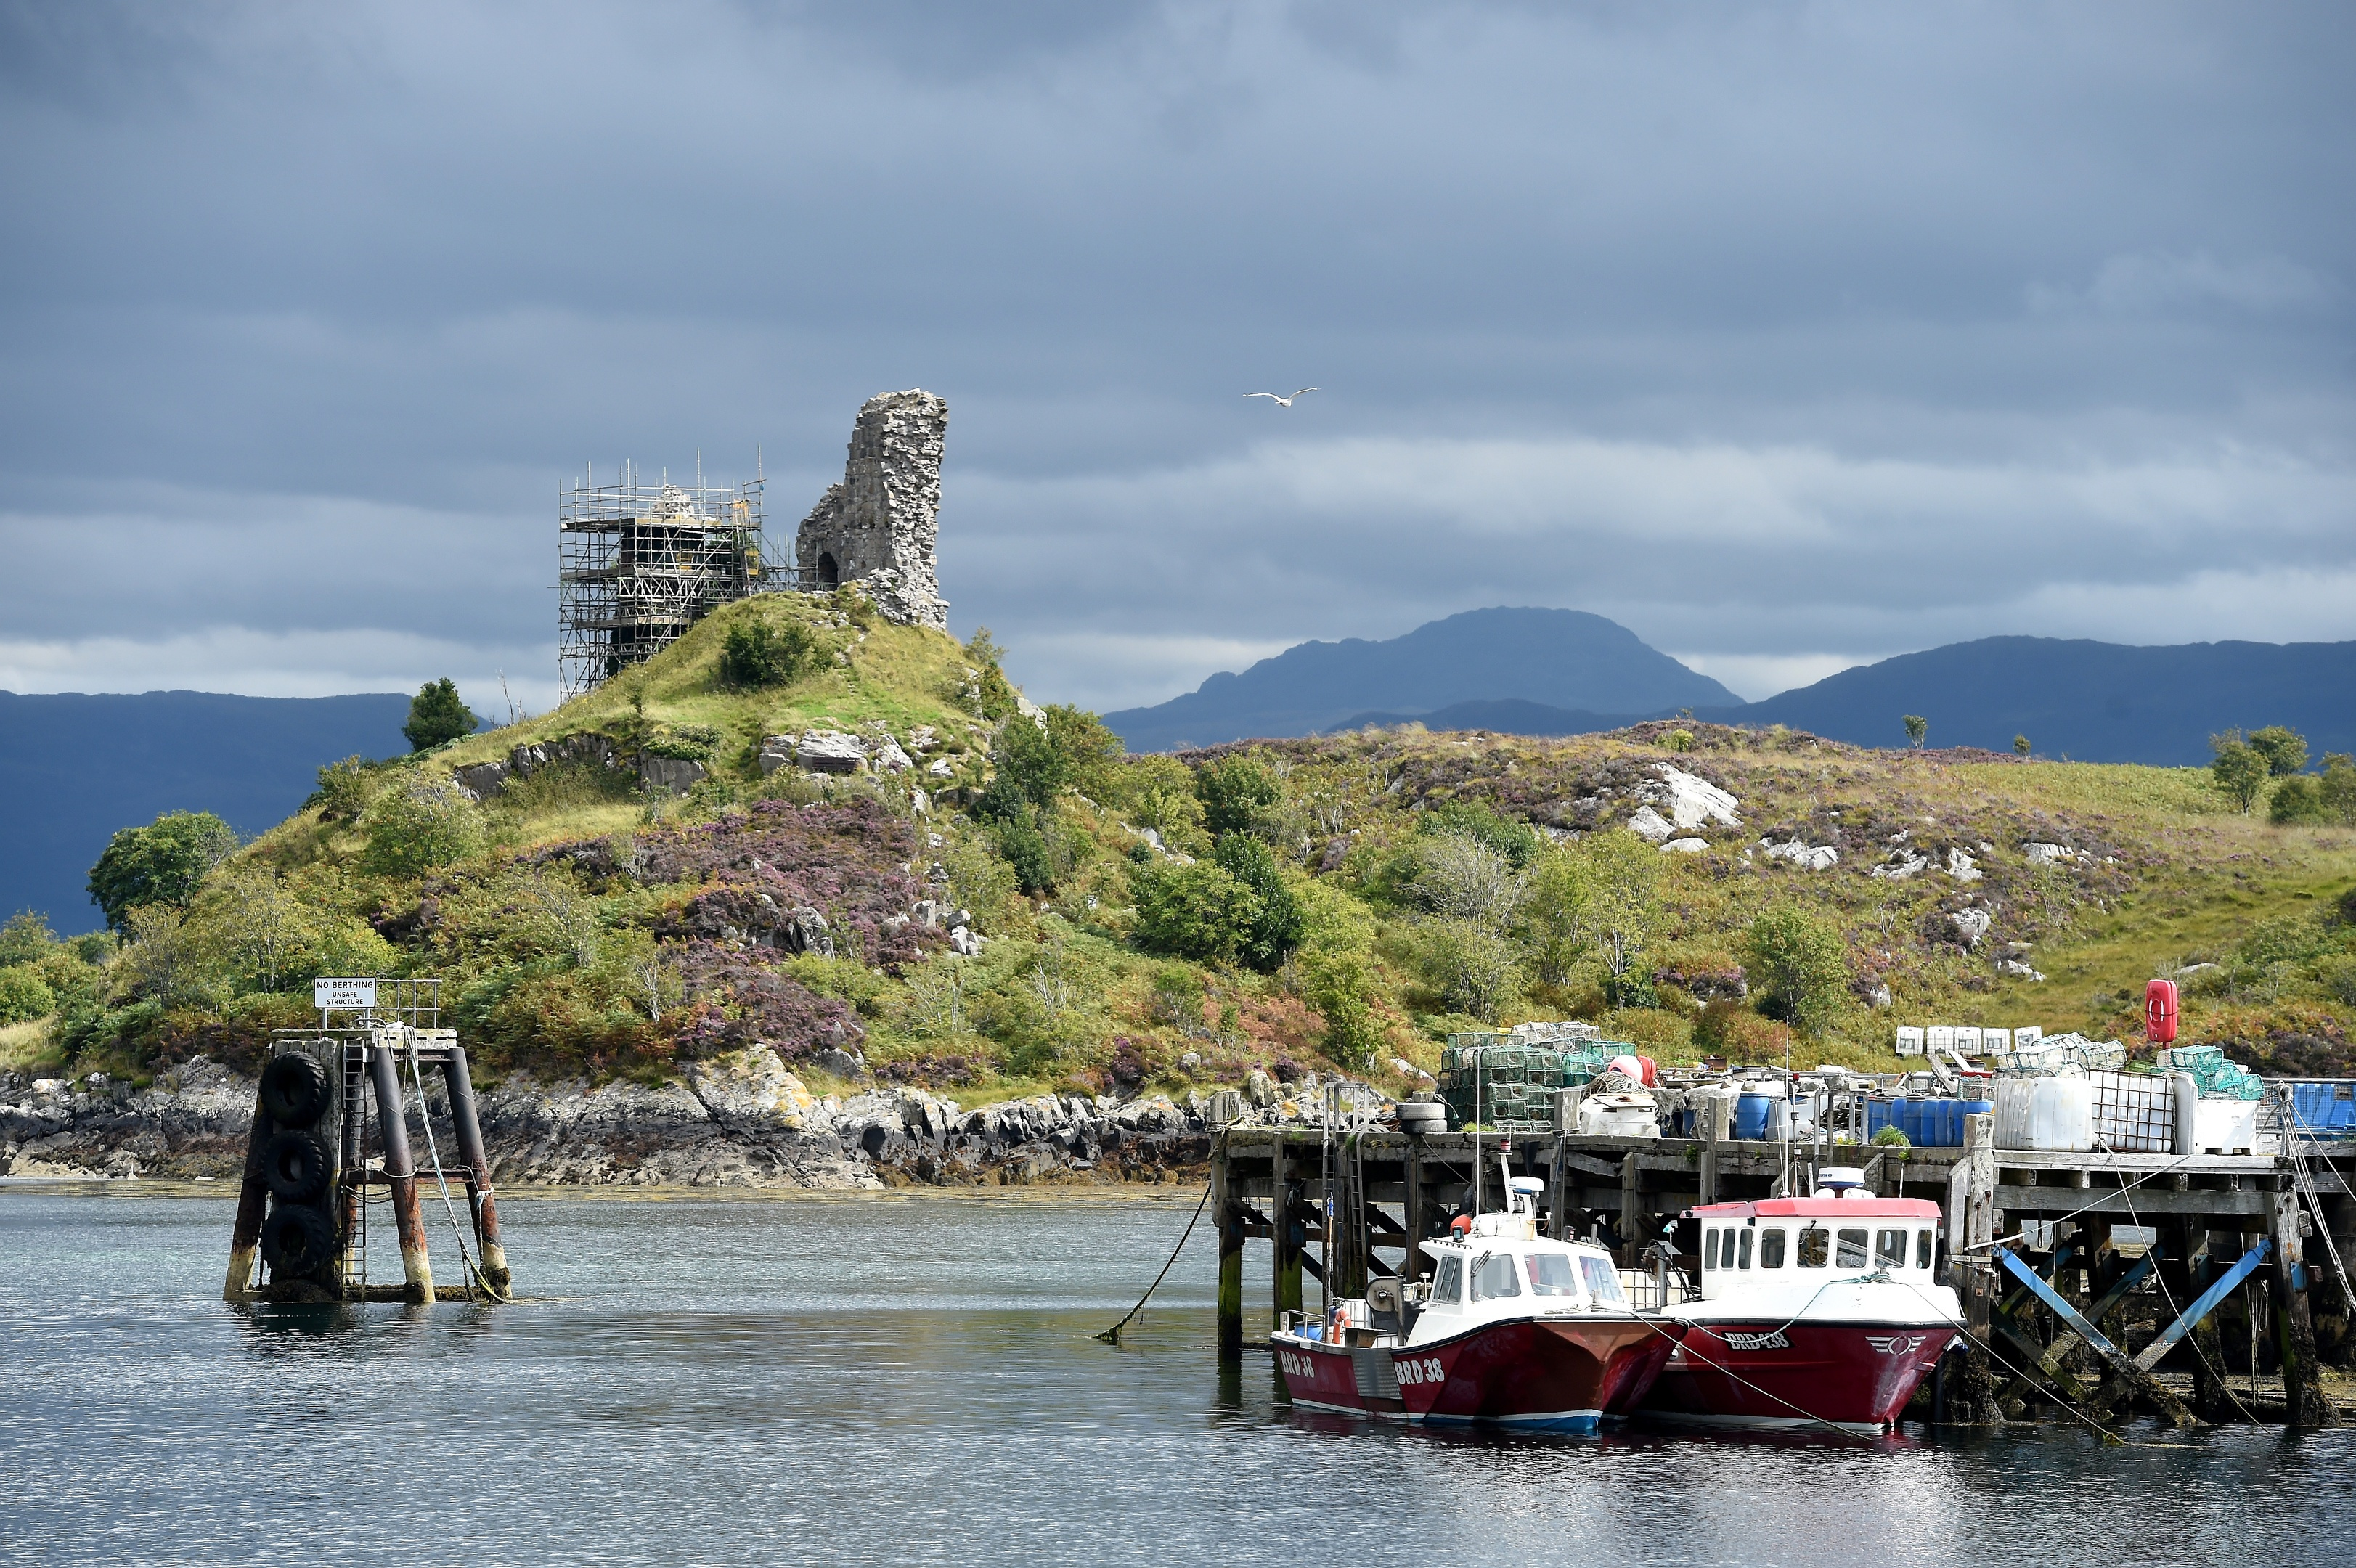 Castle Moil in Kyleakin underwent repairs following a lightning strike earlier this year. Picture by Sandy McCook